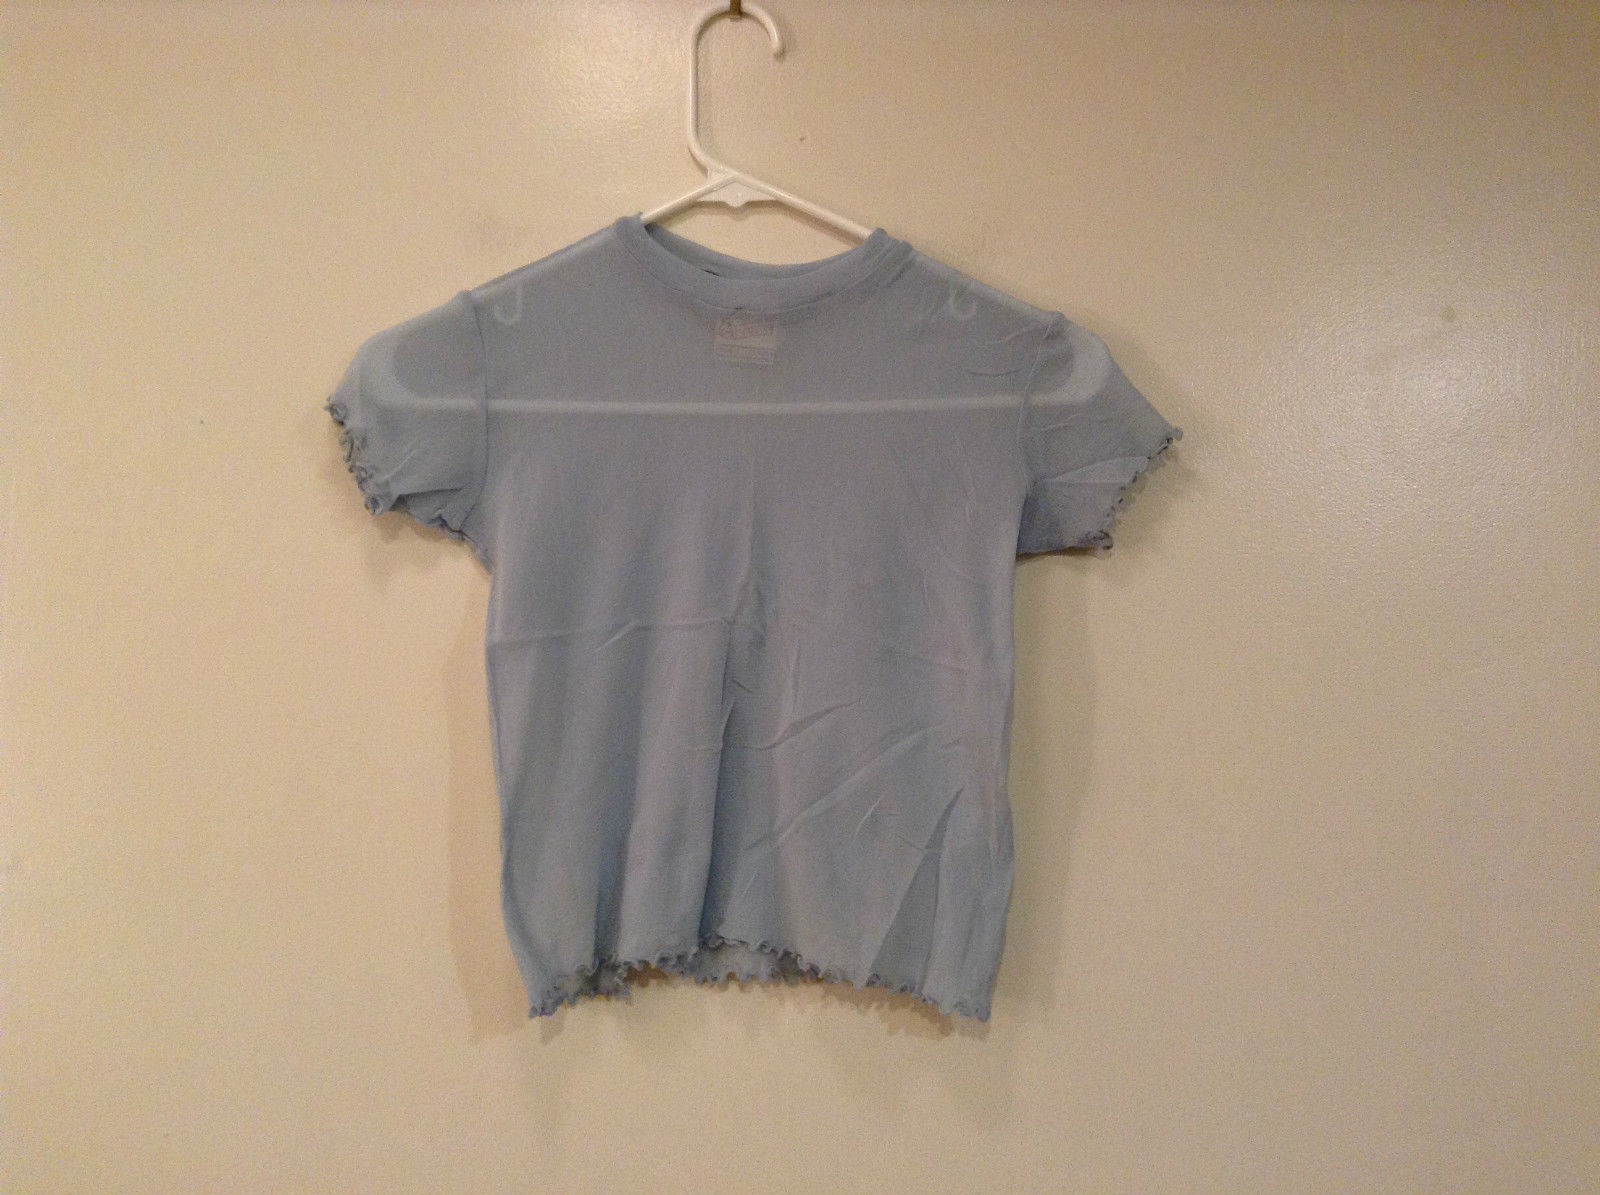 Au Coton Original Baby Blue Short Sleeve Top Very Stretchy Fabric Size Large